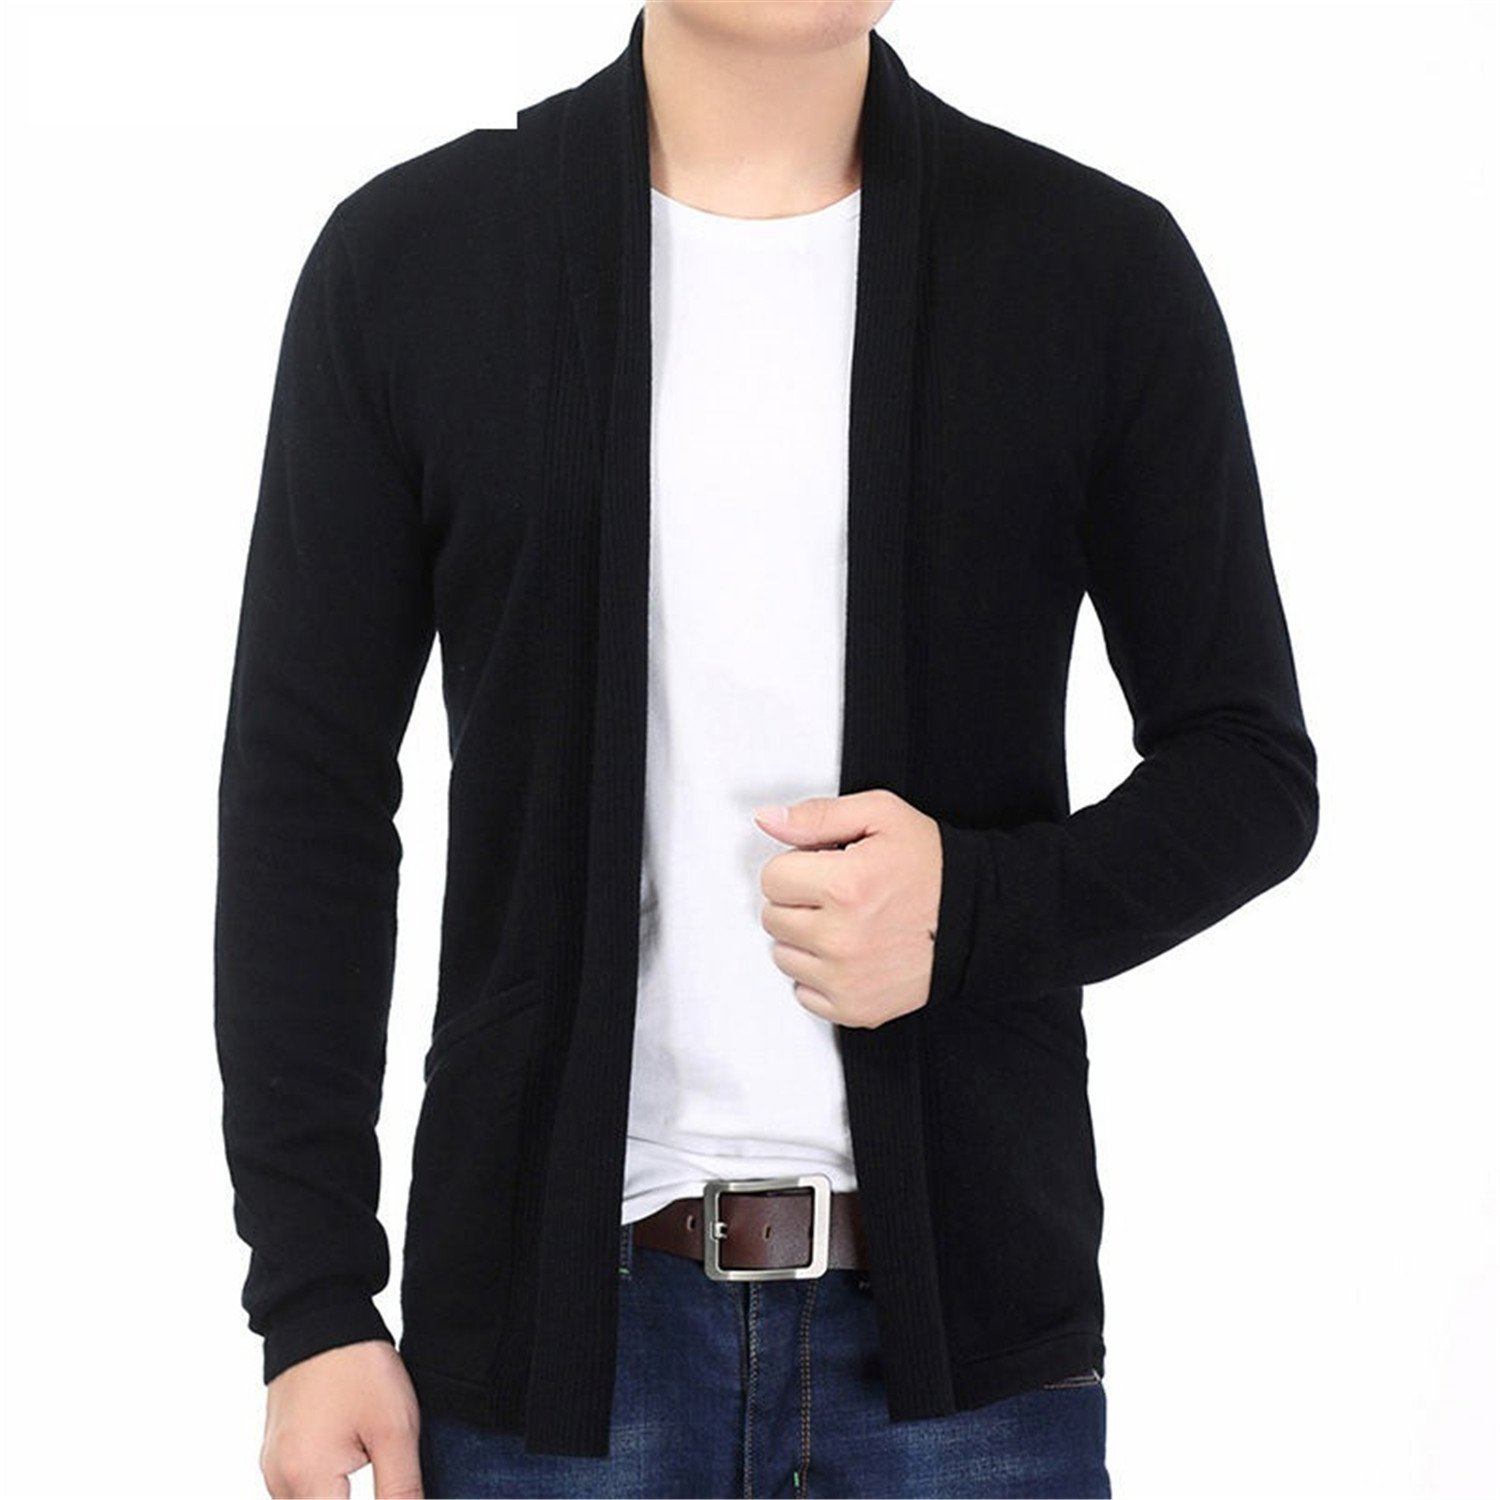 Also Easy Cardigan Winter Thick Warm Cashmere Wool Sweater Men Fashion Long Mens Cardigans Sweater Coats 7320 Black S